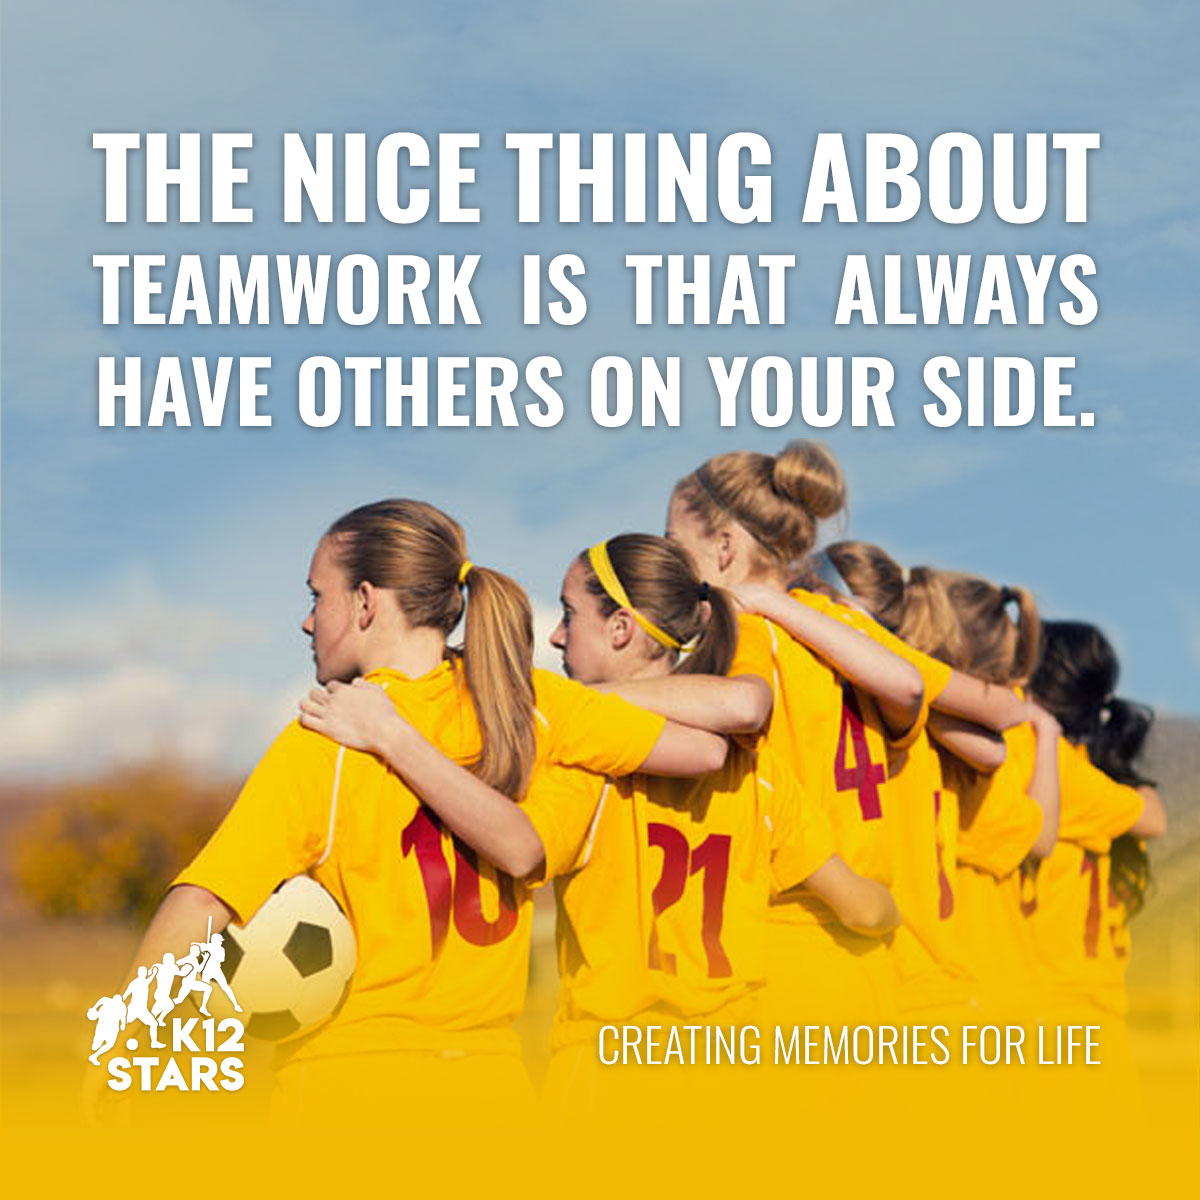 The nice thing about teamwork is that always have others on your side. #sports #youthsports #youthsportstraining #values #thoughts #youth #kids #beliefs #loveschool4 #k12starspic.twitter.com/VILCVjOtnb